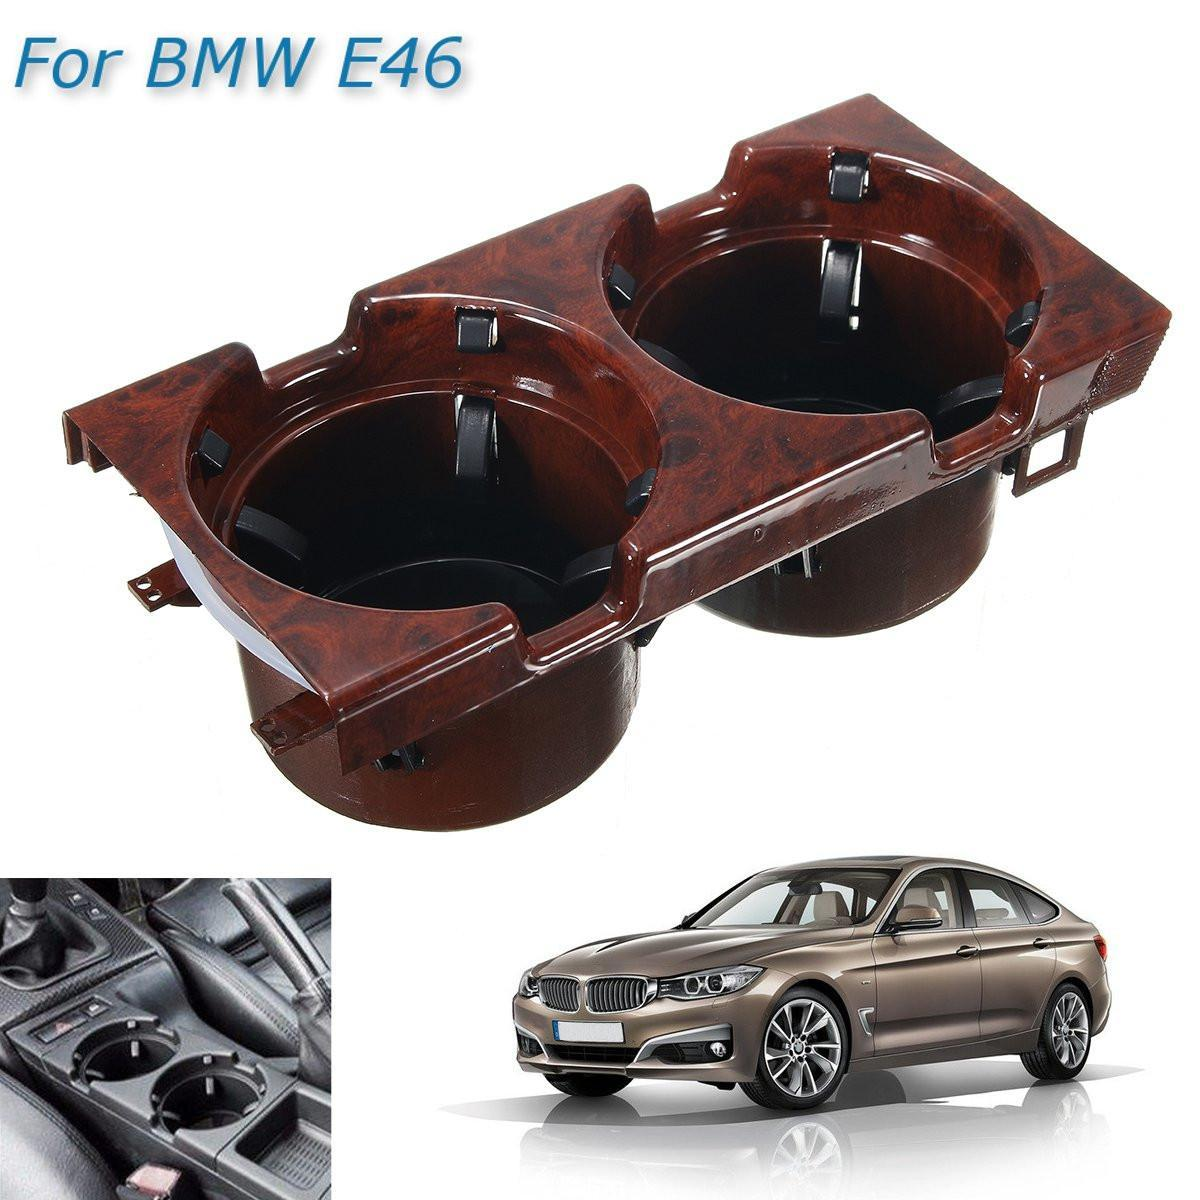 Product details of Wooden Grain Front Center Drink Cup Holder For BMW 3 Series E46 1998-2006 # 51168217953